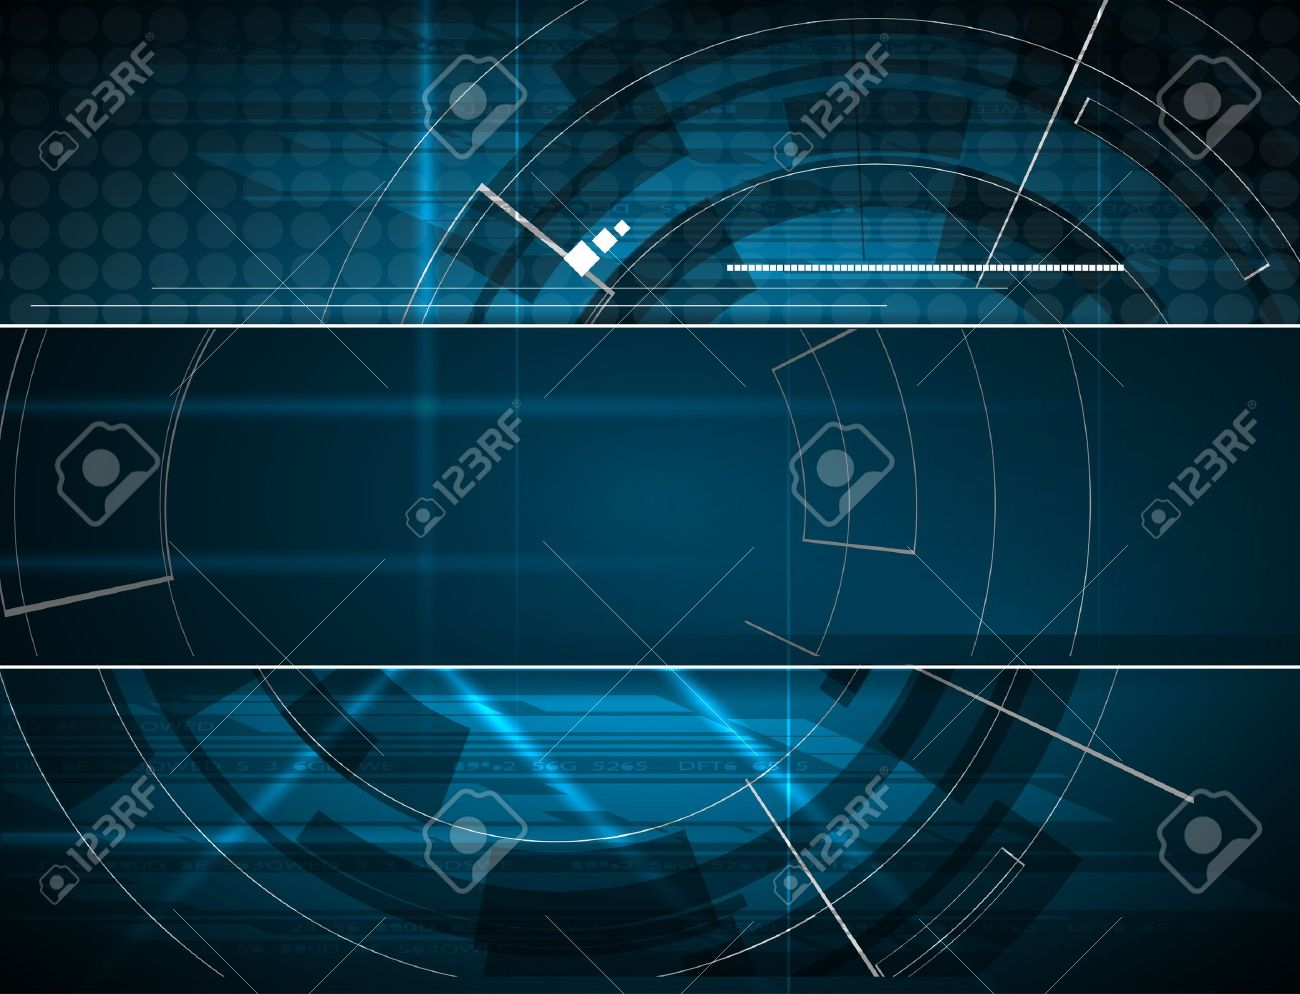 abstract blue computer technology business banner background - 17388709